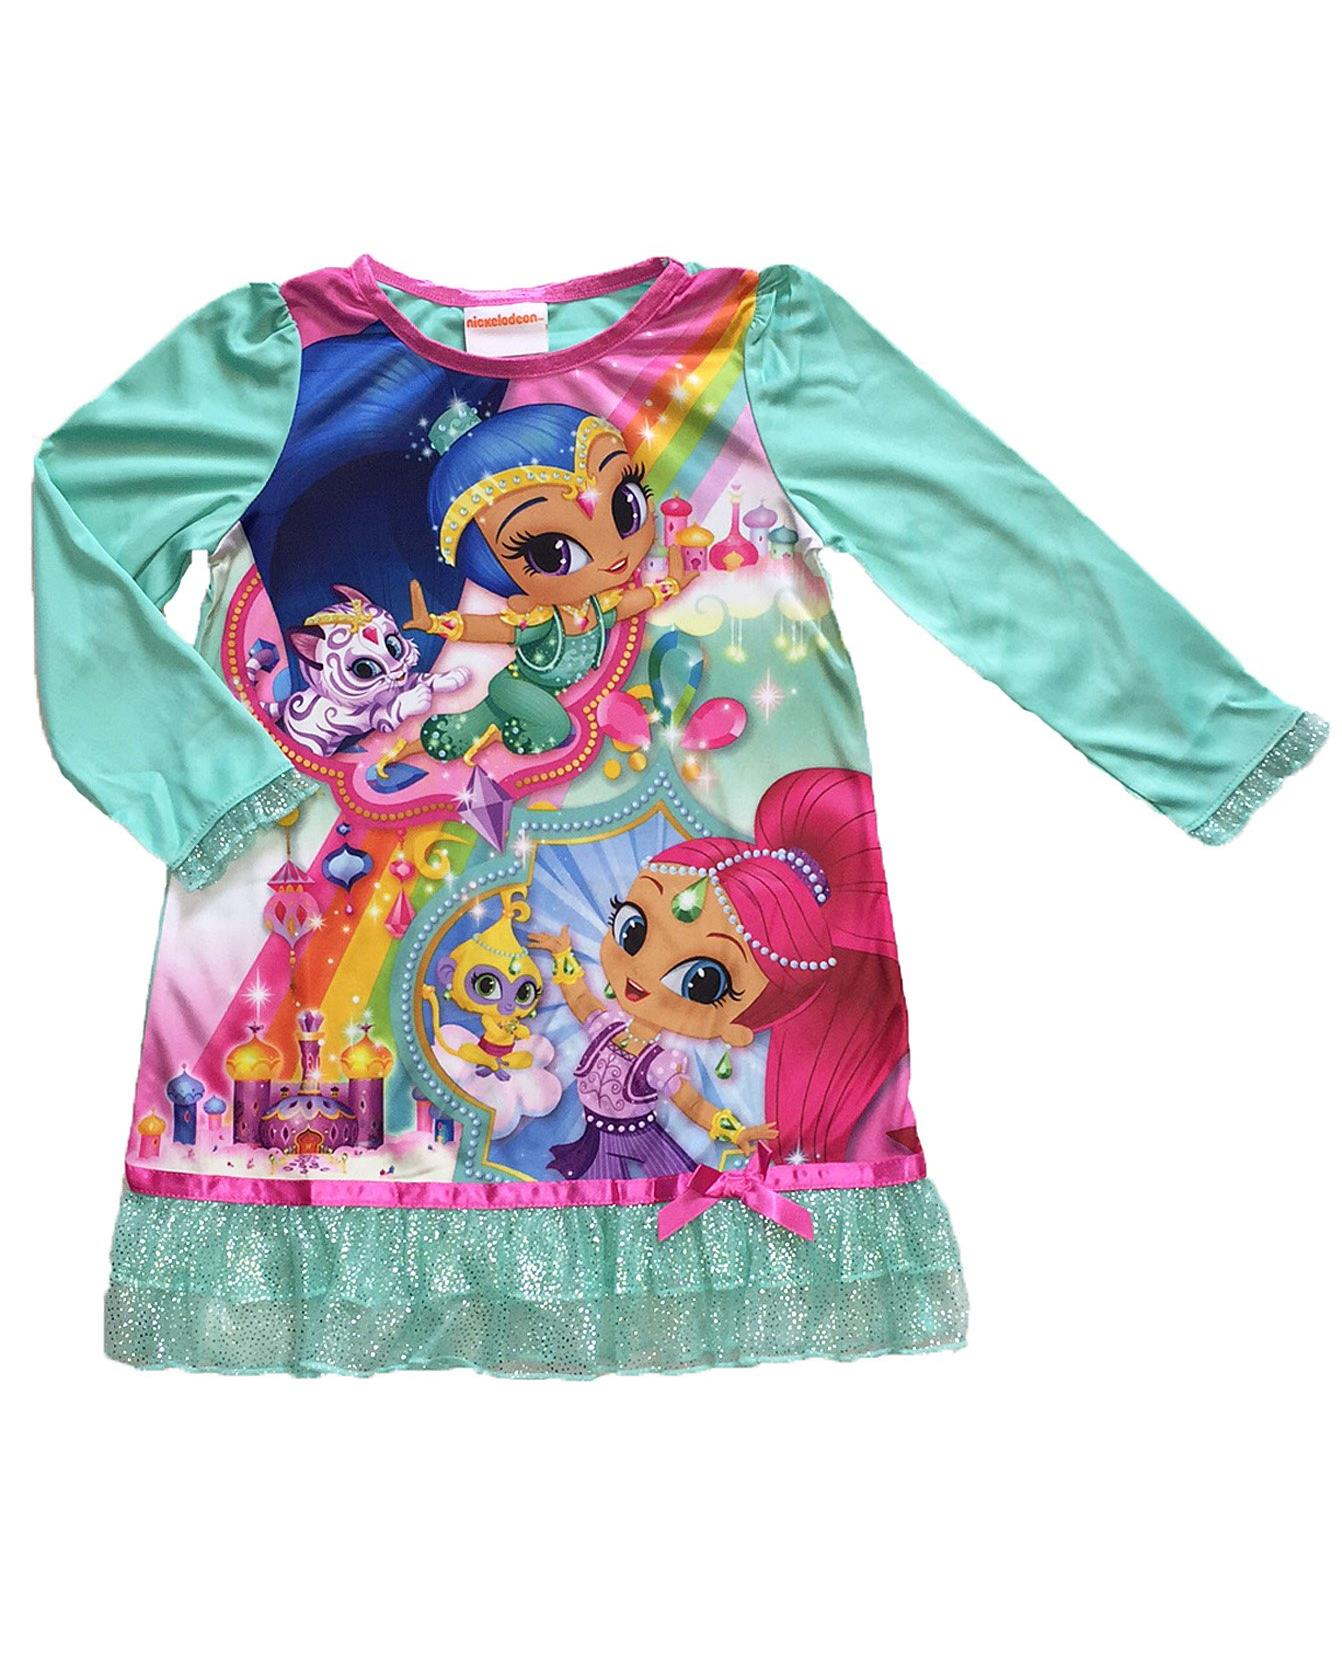 Nickelodeon Shimmer and Shine Girls Nightgown 4-16